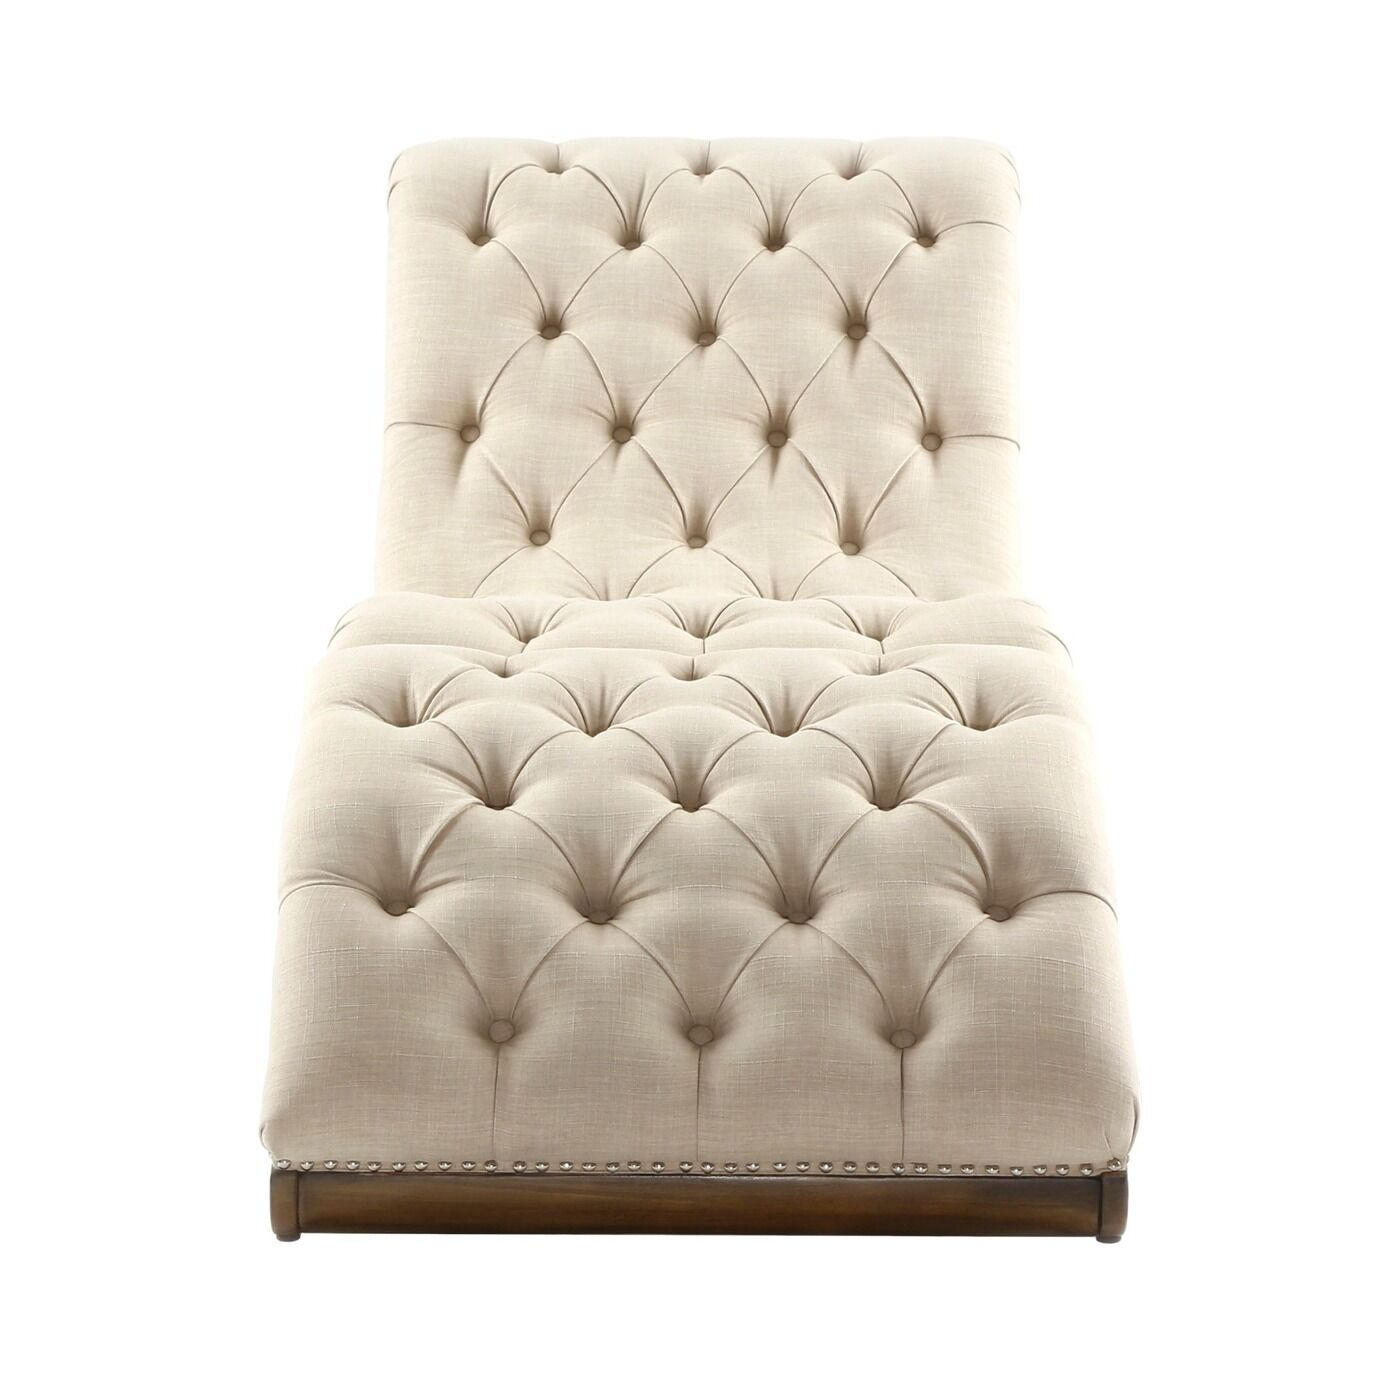 Chaise Lounge Chair Modern Tufted Chaise Lounge Chair Ottoman Beige Modern Bed